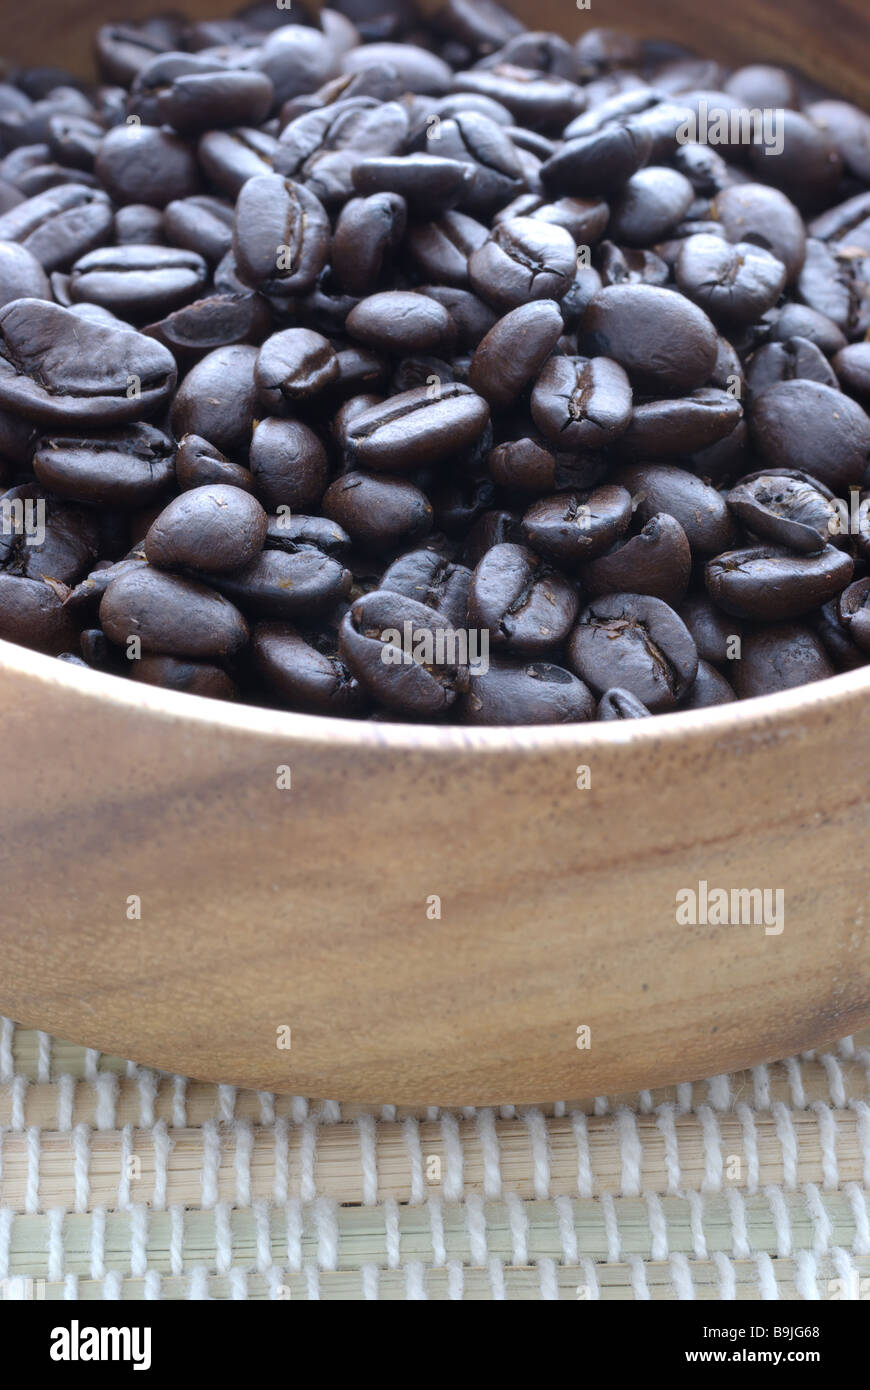 Roasted coffee beans in wooden cup - Stock Image